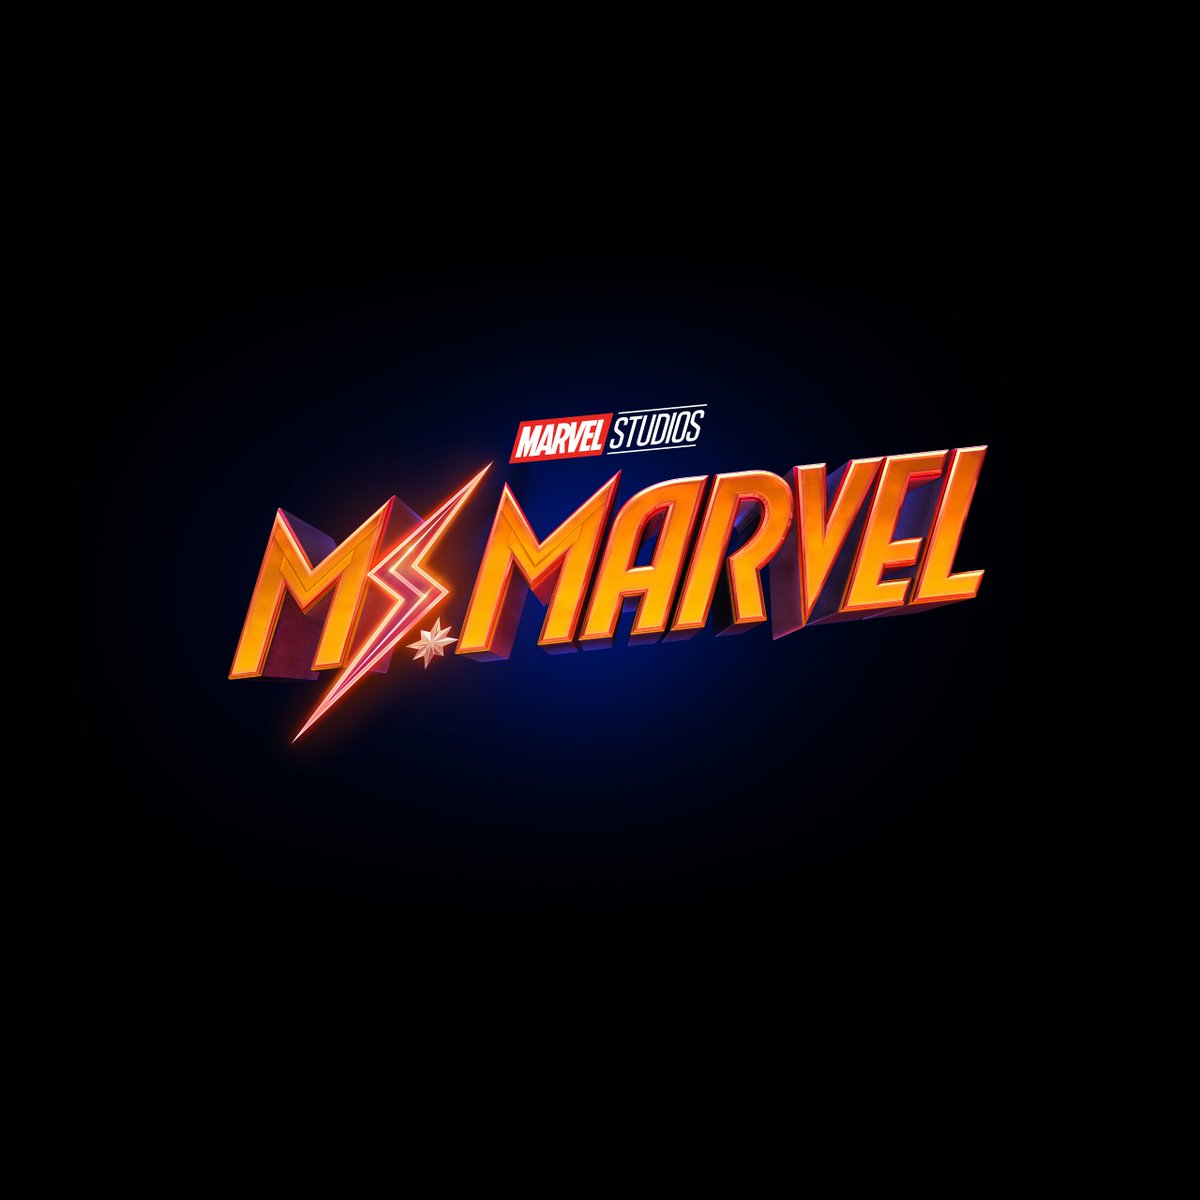 Just announced at #D23Expo, MS. MARVEL, an original series from Marvel Studios, only on Disney+